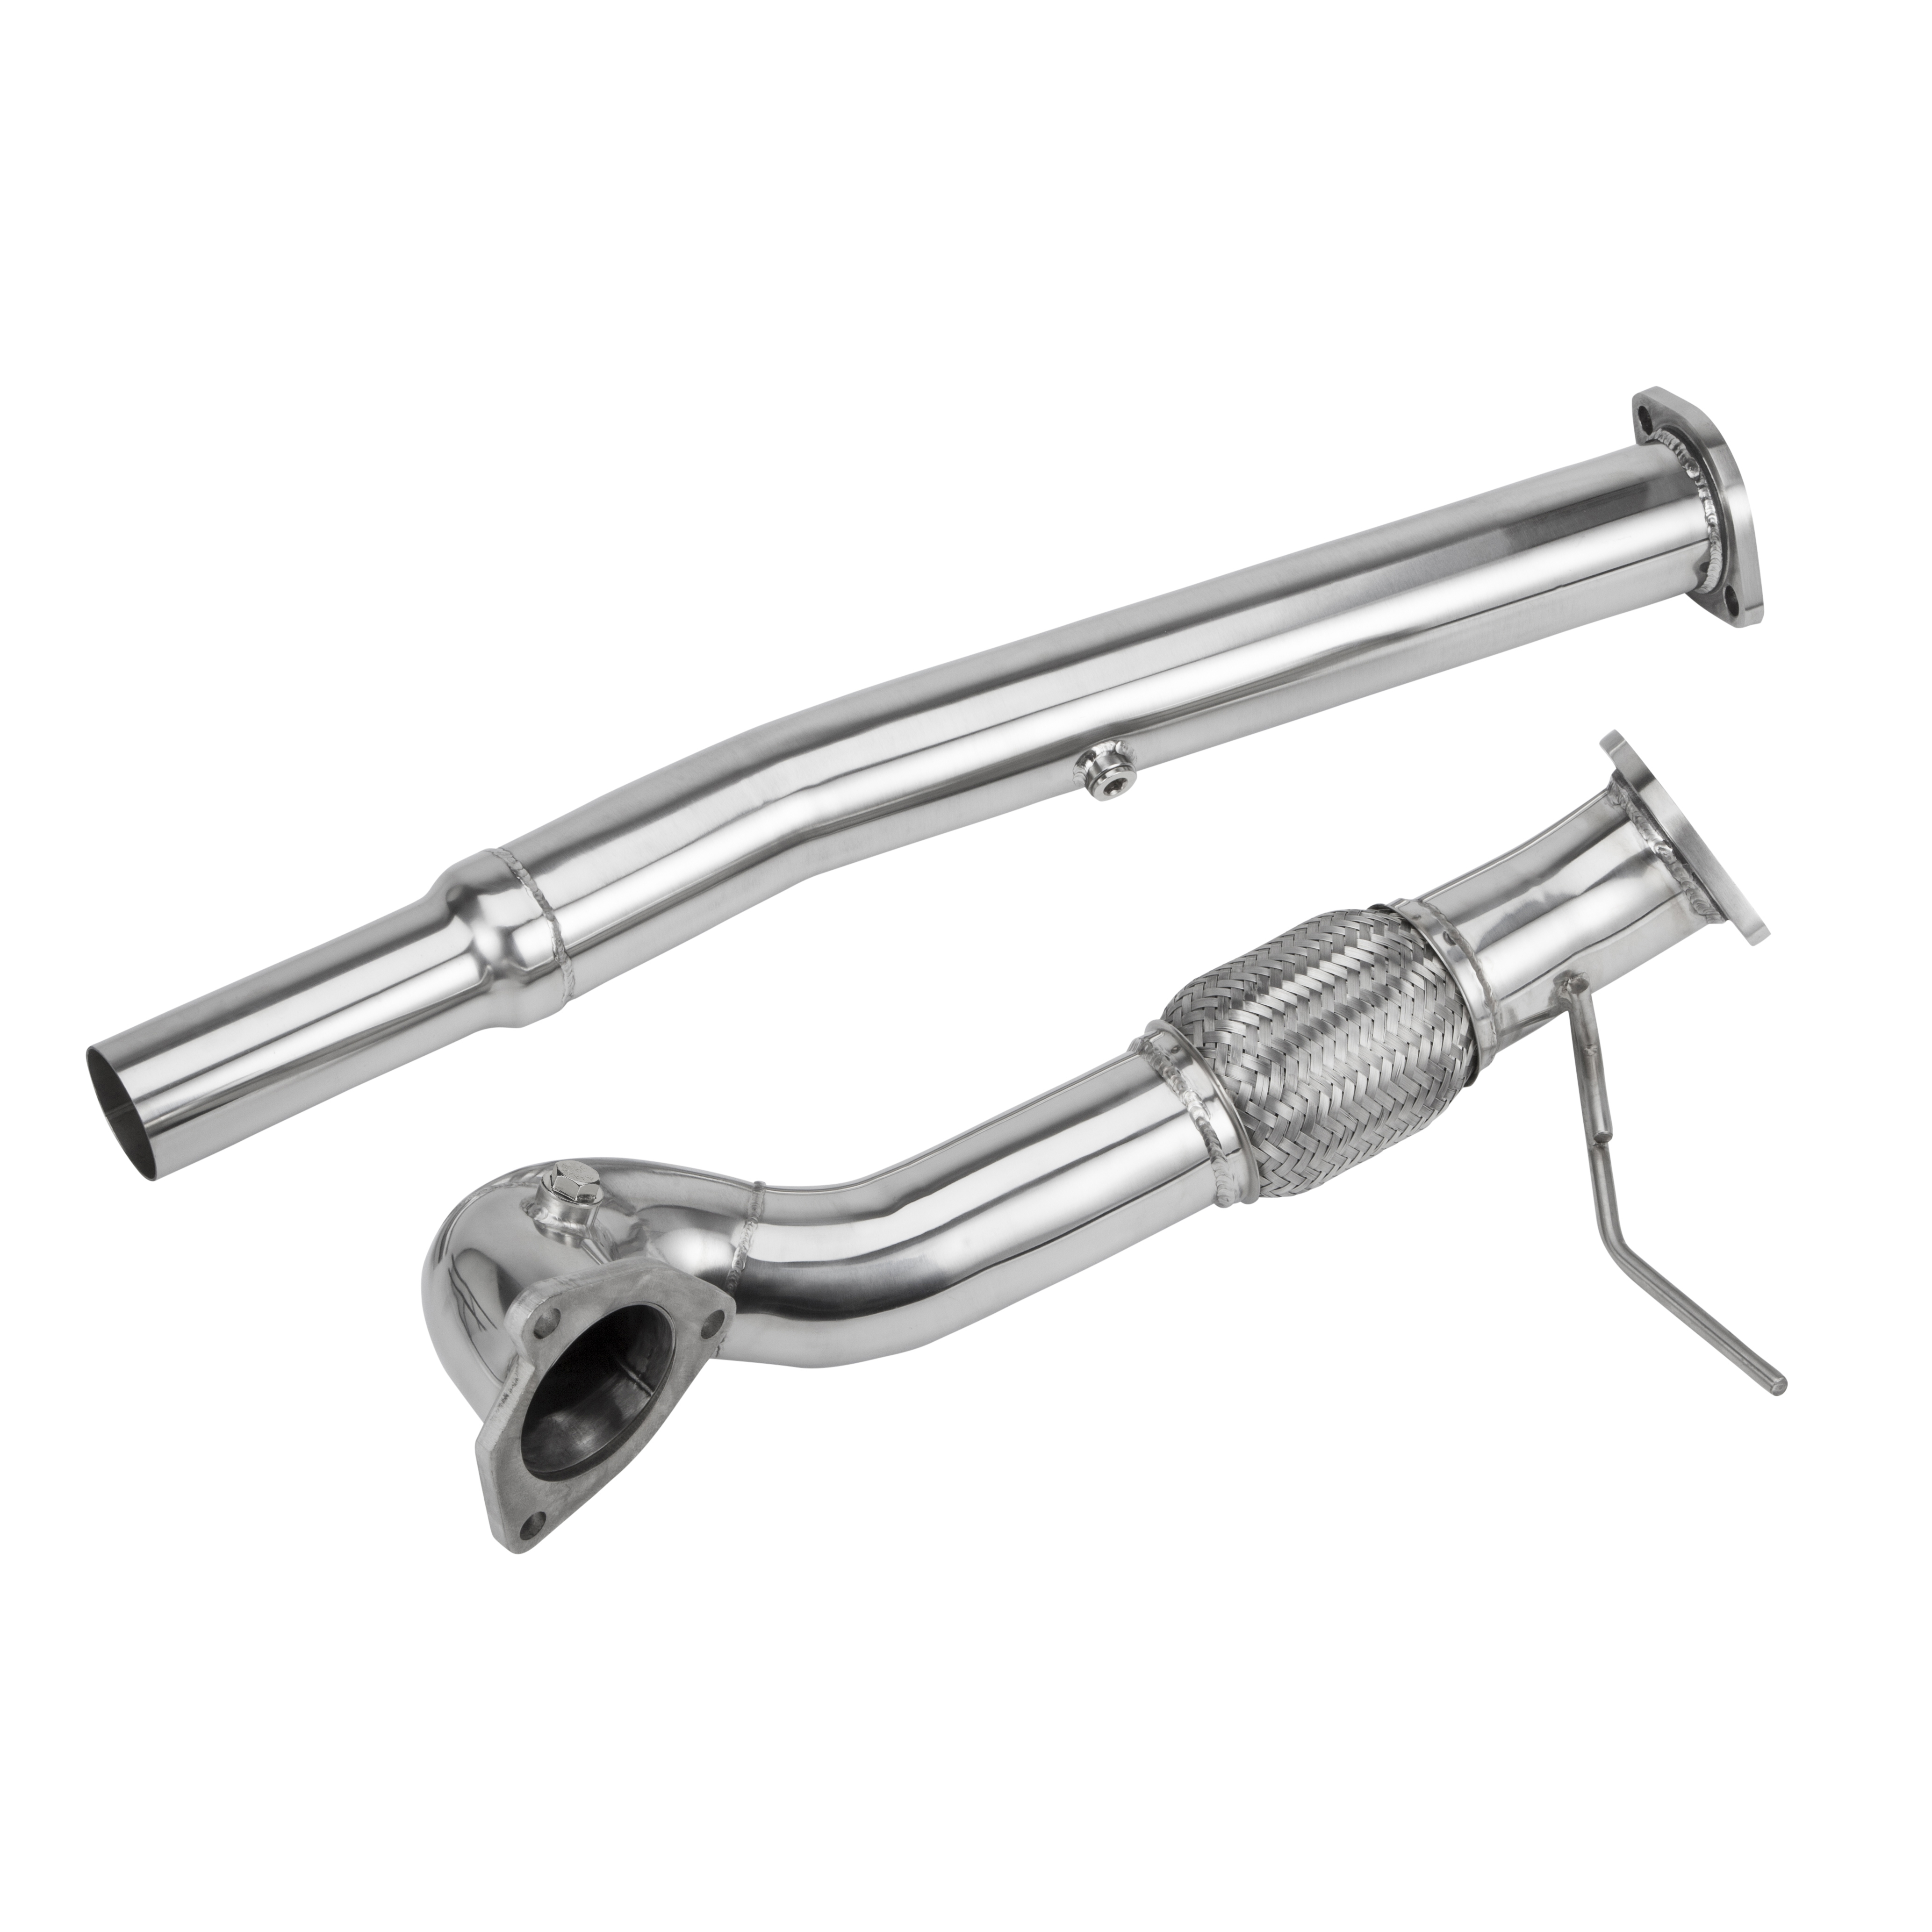 Stainless Steel Exhaust Turbo Decat Downpipe Audi S3 Tt